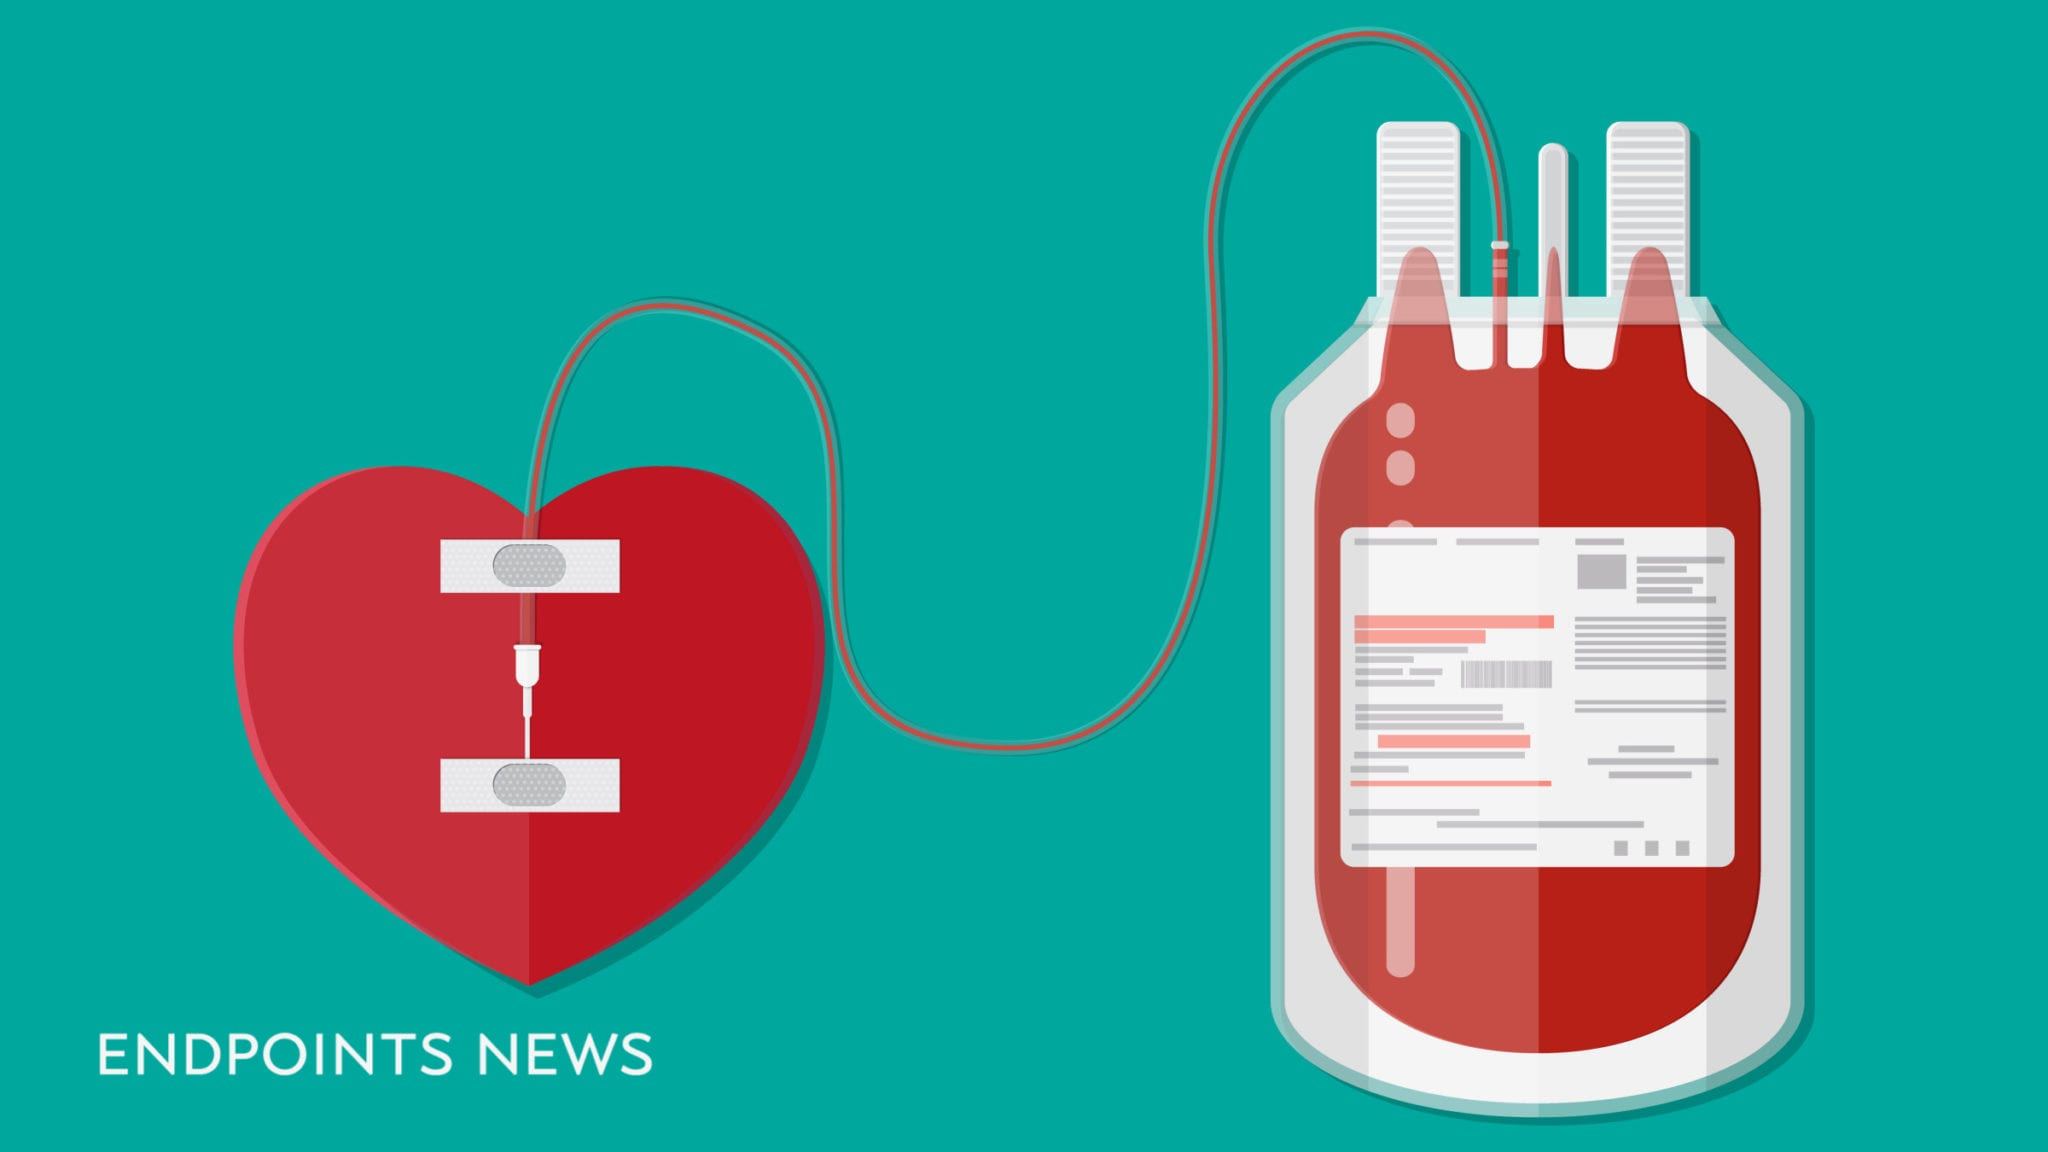 Fda Cautions Over Young Donor Blood Transfusions To Treat